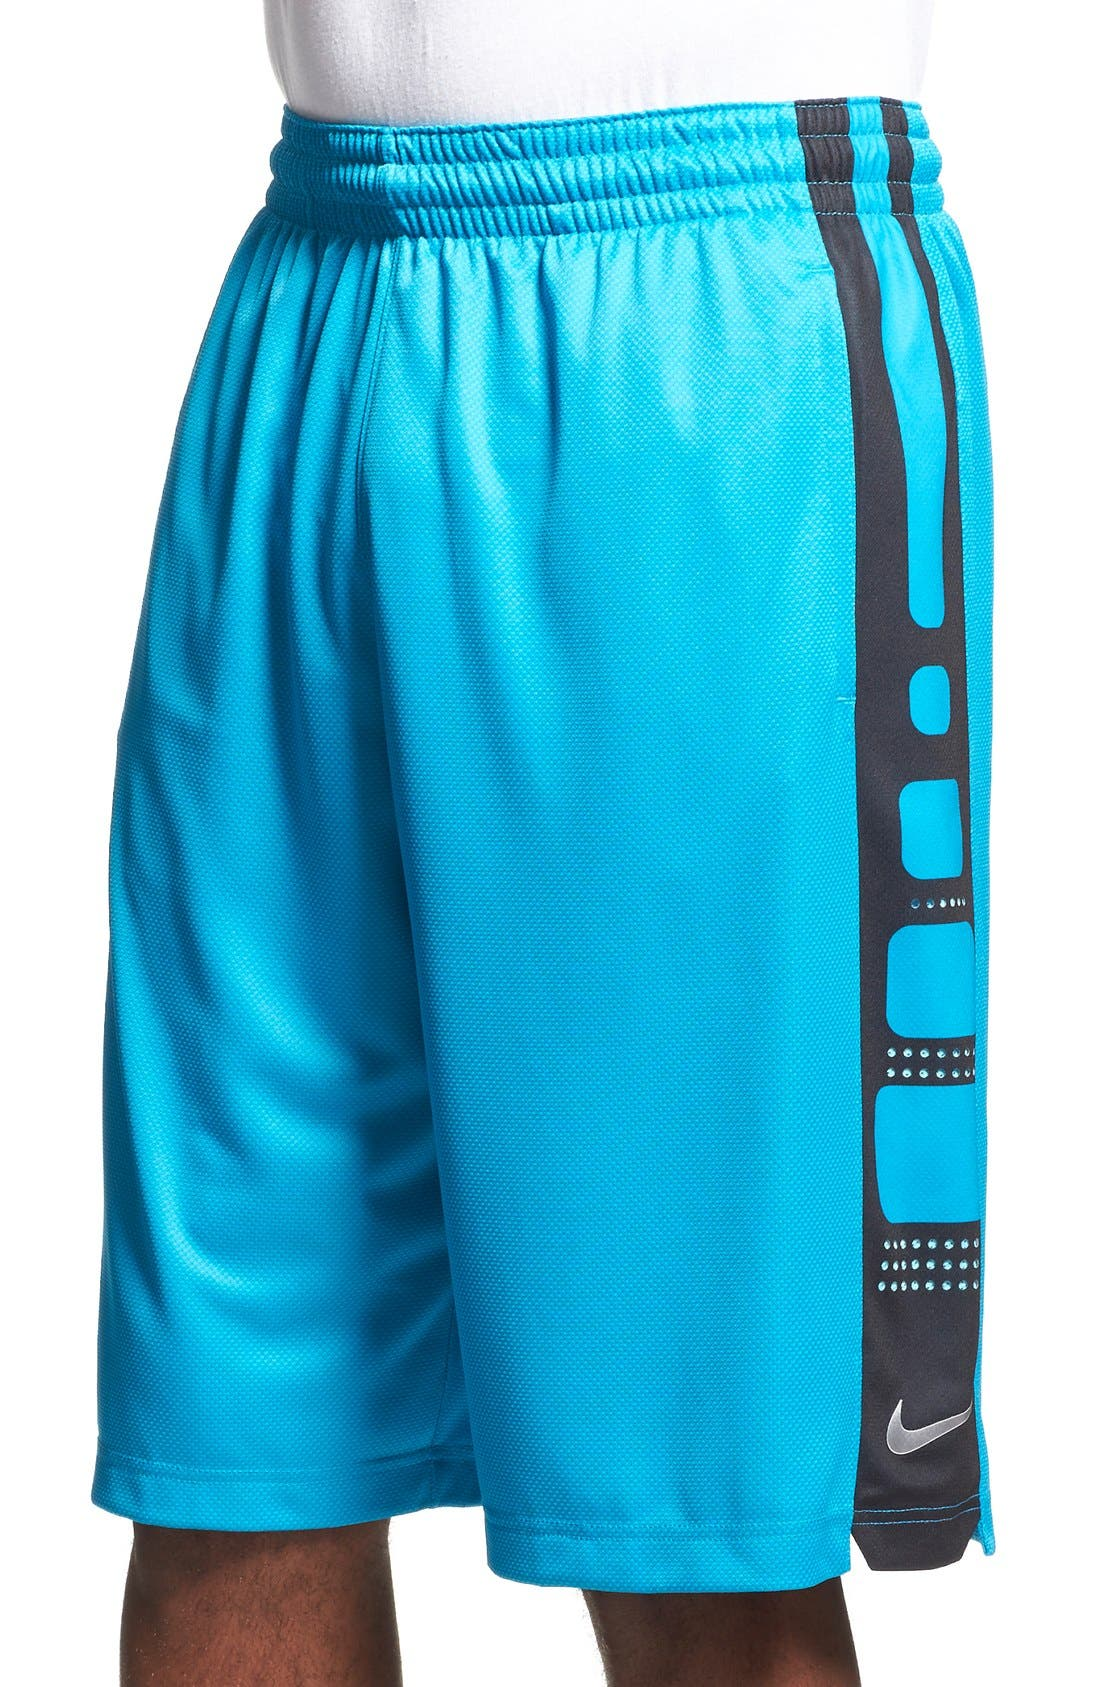 Alternate Image 1 Selected - Nike 'Elite' Knit Basketball Shorts